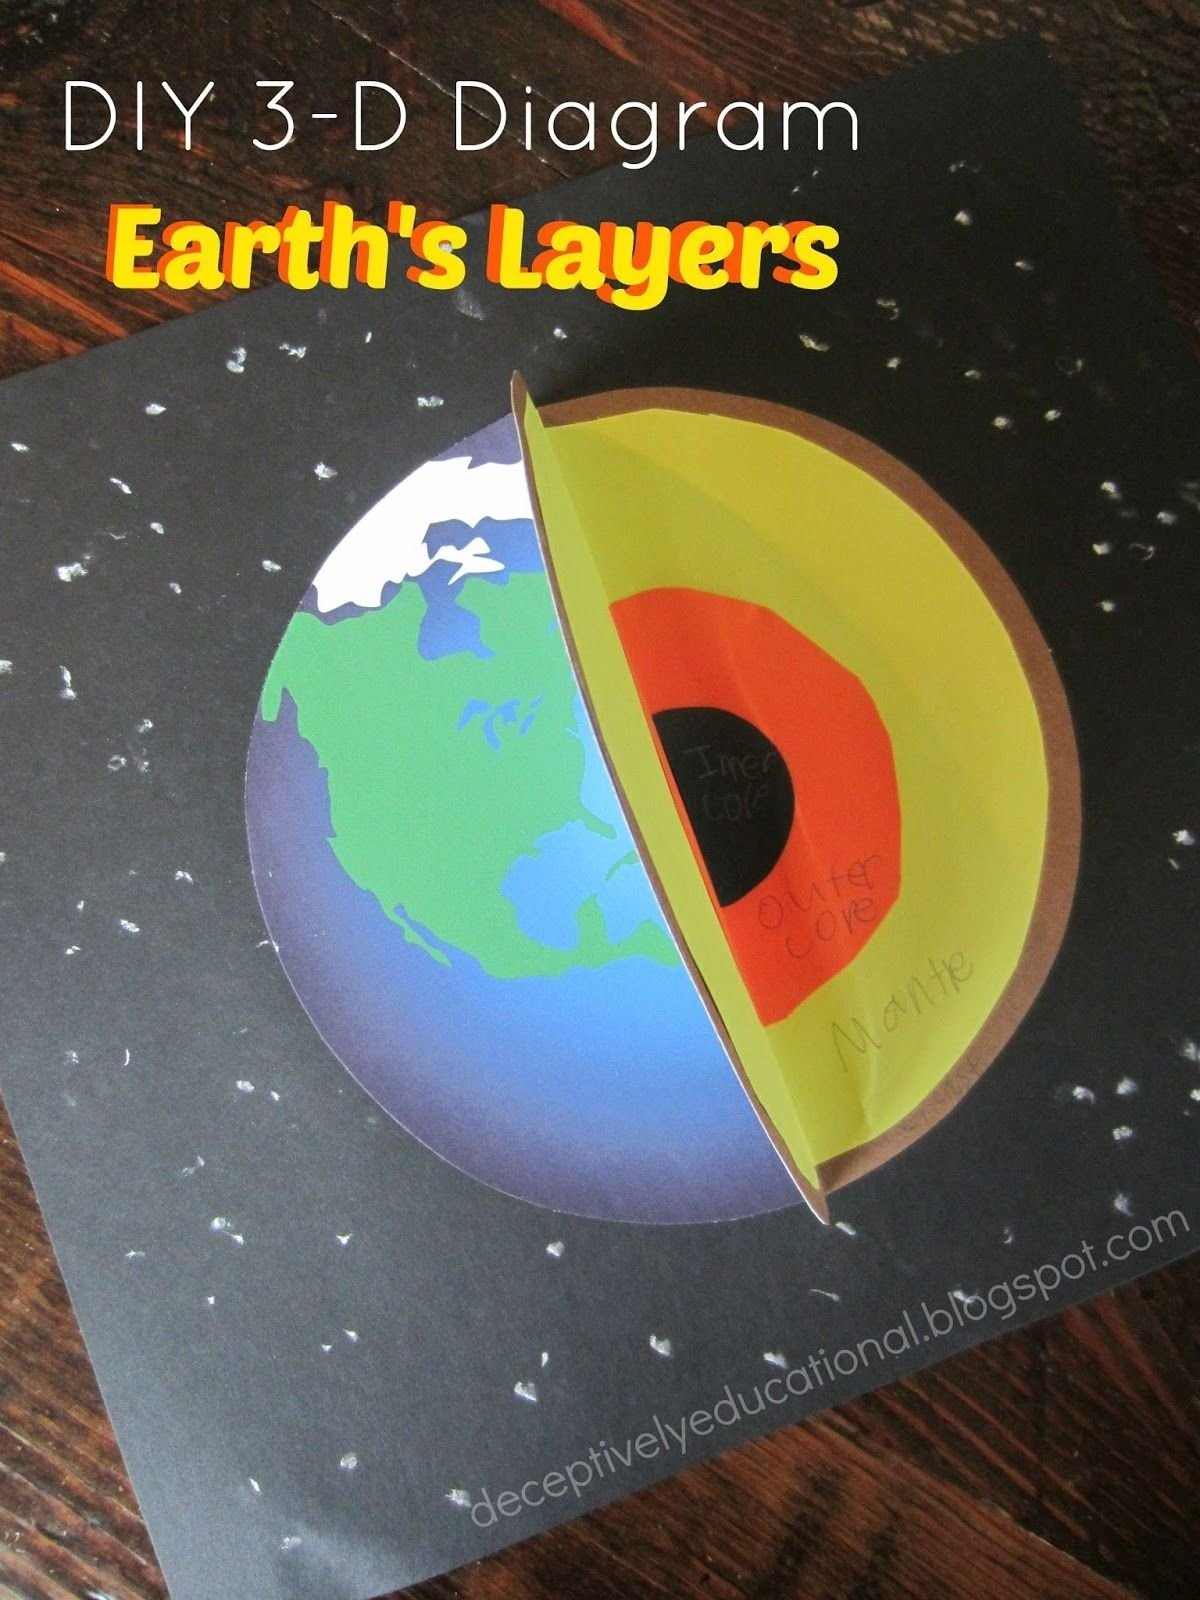 10 Famous Layers Of The Earth Project Ideas relentlessly fun deceptively educational earths layers diy 3 d